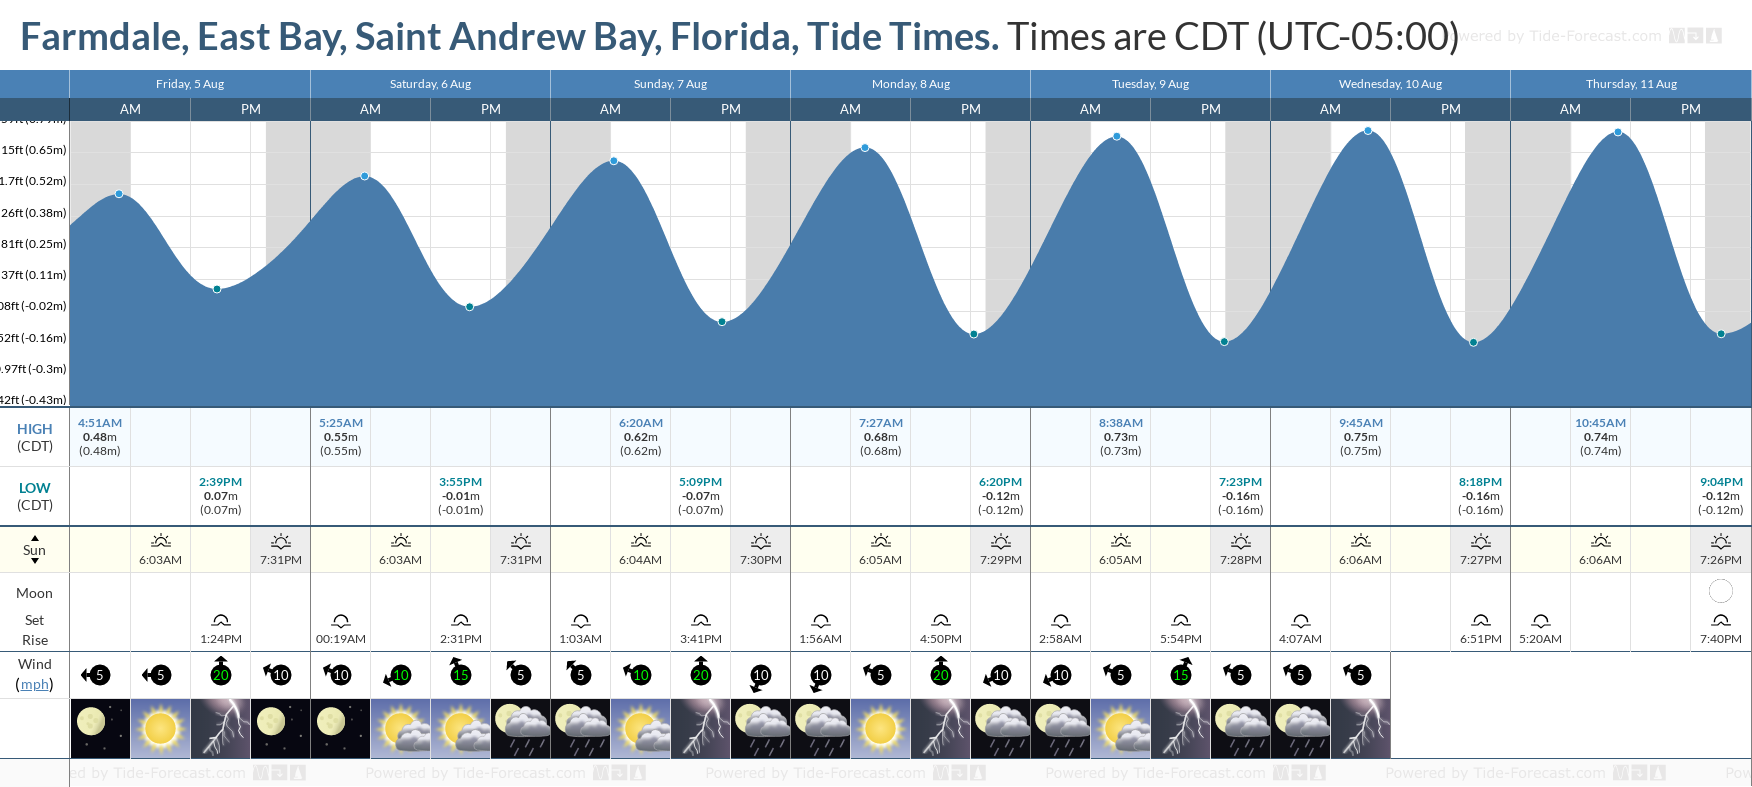 Farmdale, East Bay, Saint Andrew Bay, Florida Tide Chart including high and low tide tide times for the next 7 days